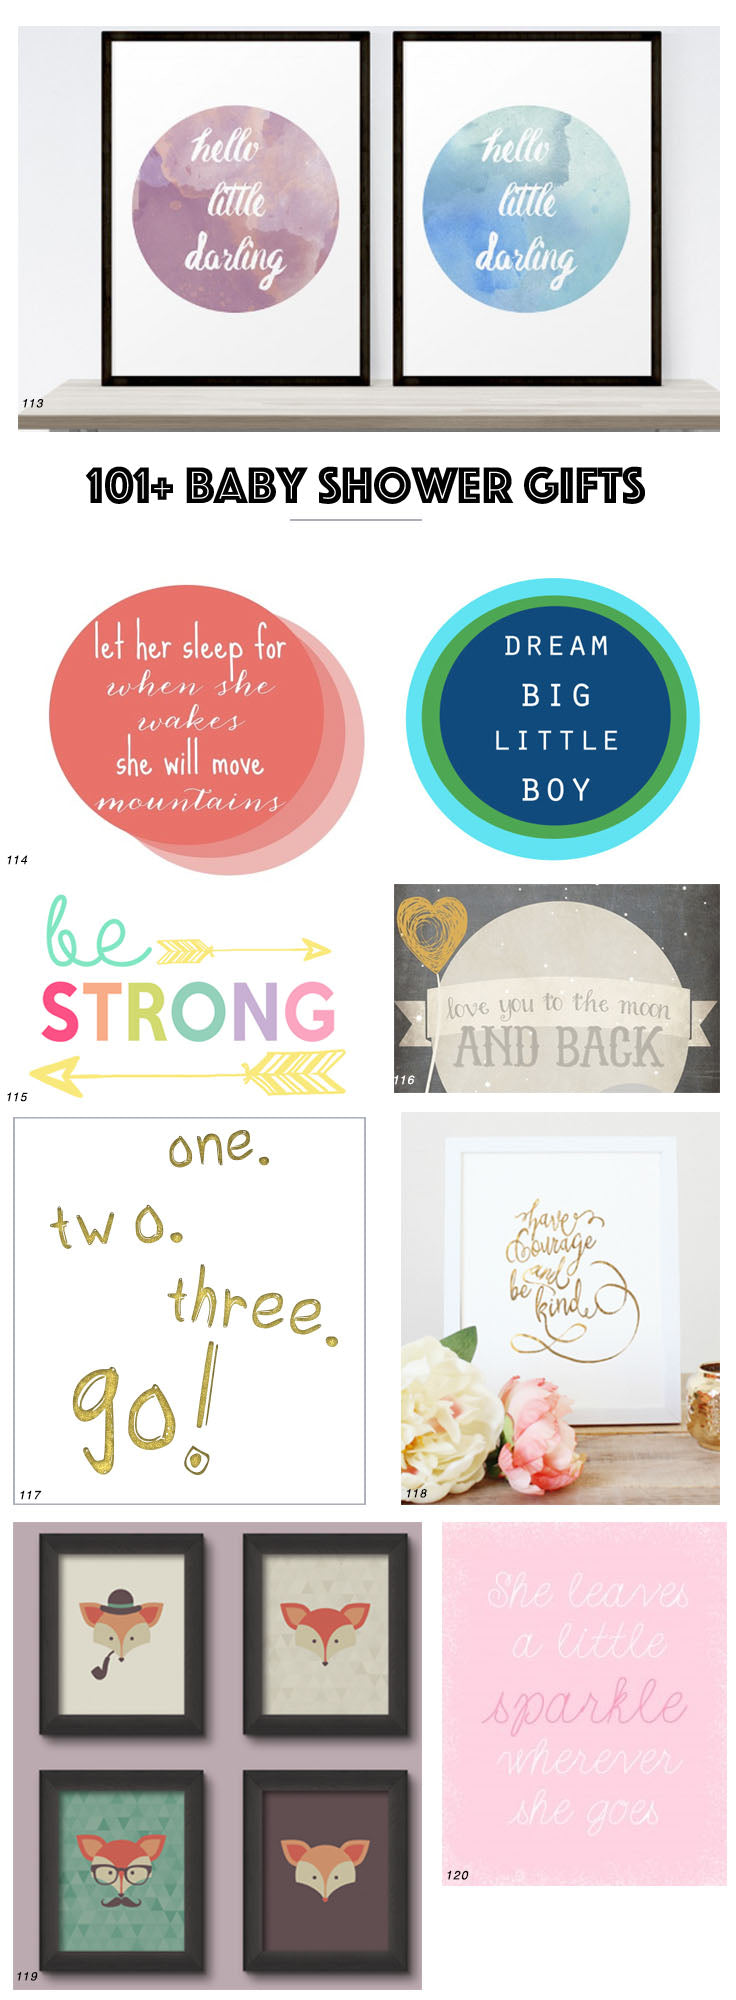 101 Free Baby Shower Gifts